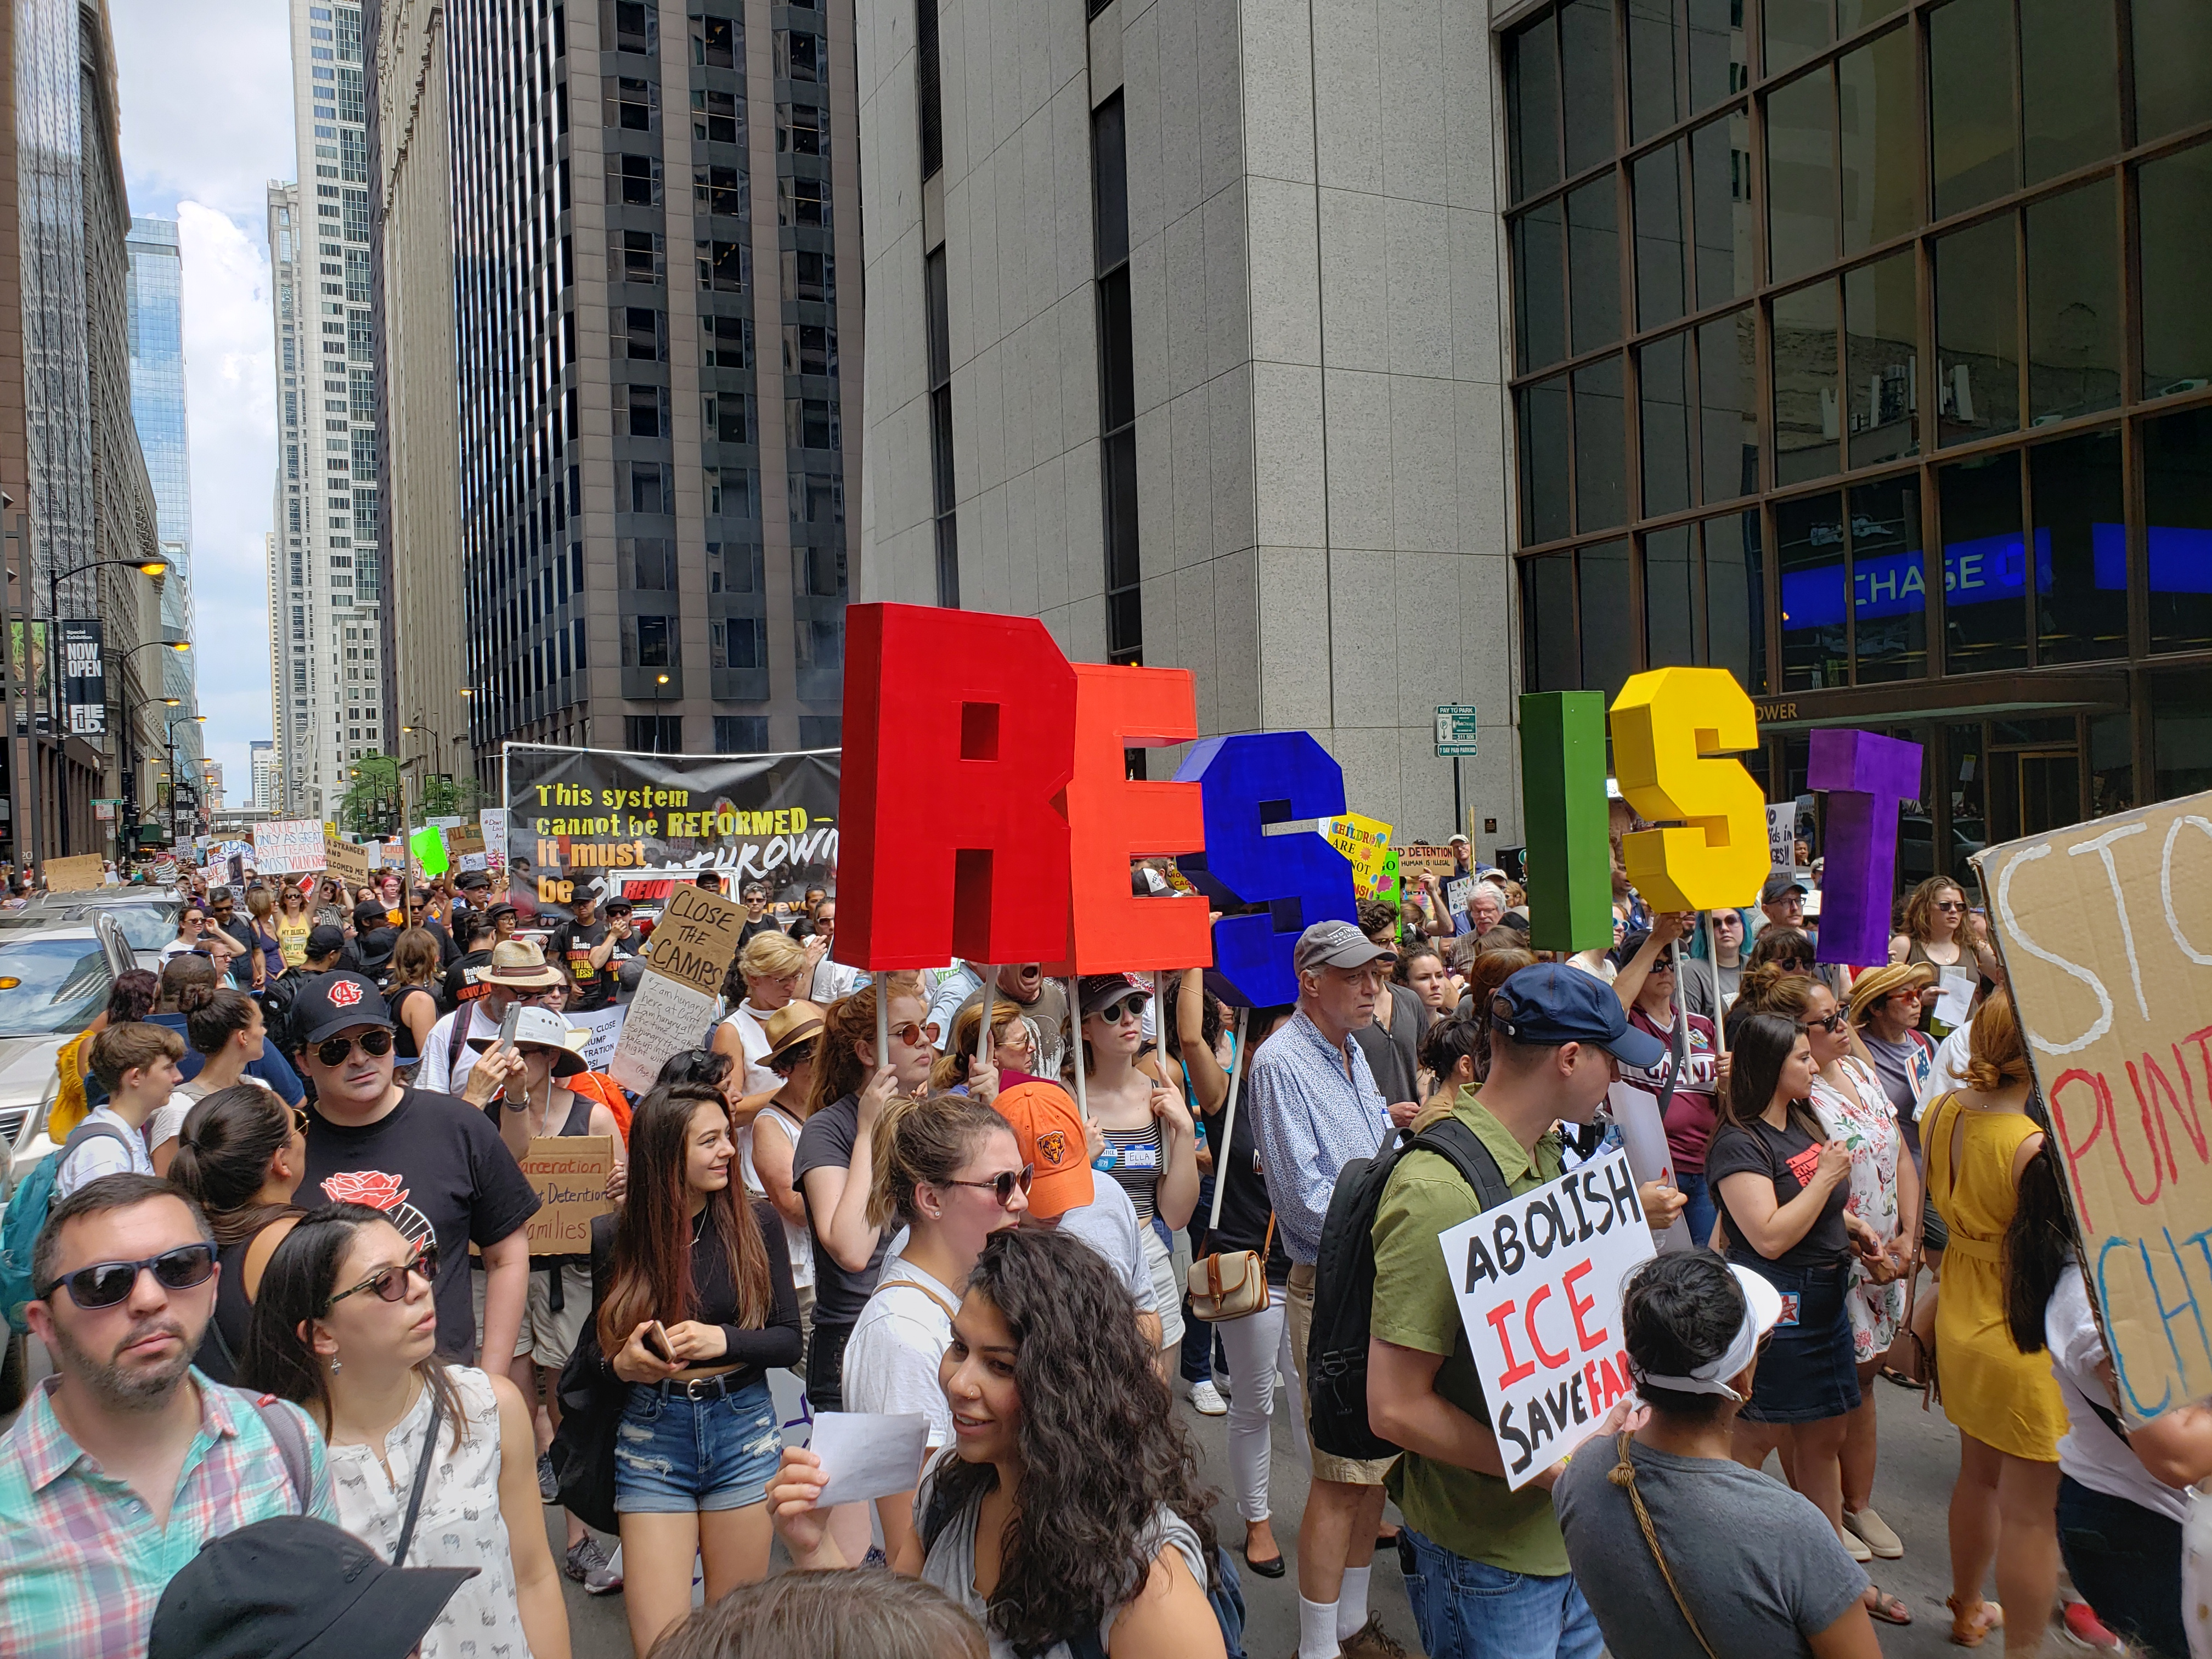 Demonstrators make their way through the Loop on Saturday to protest the Trump administration's immigration policies.